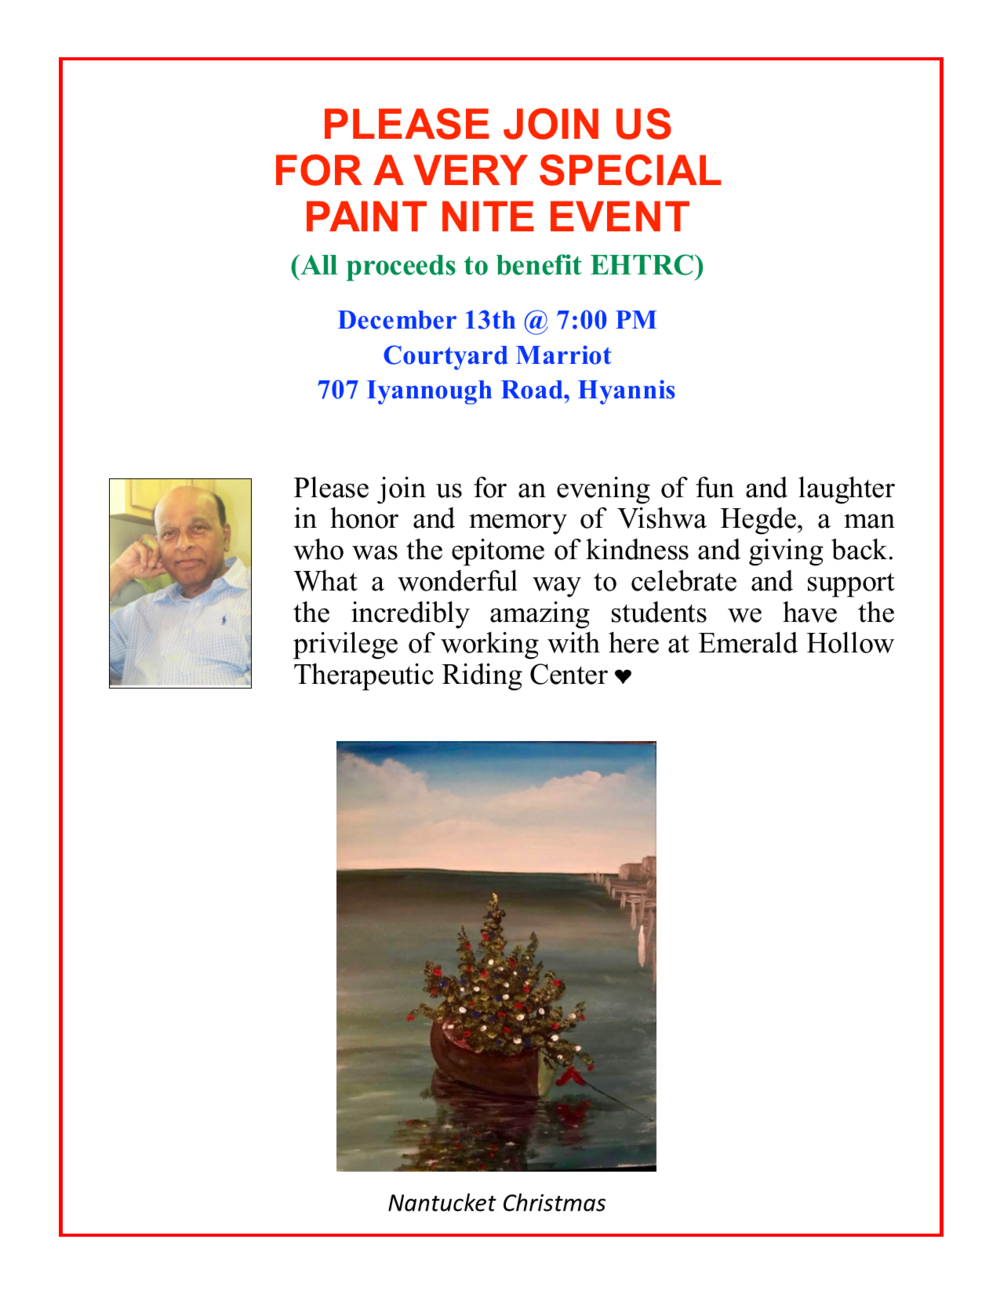 Paint Nite 2018.png